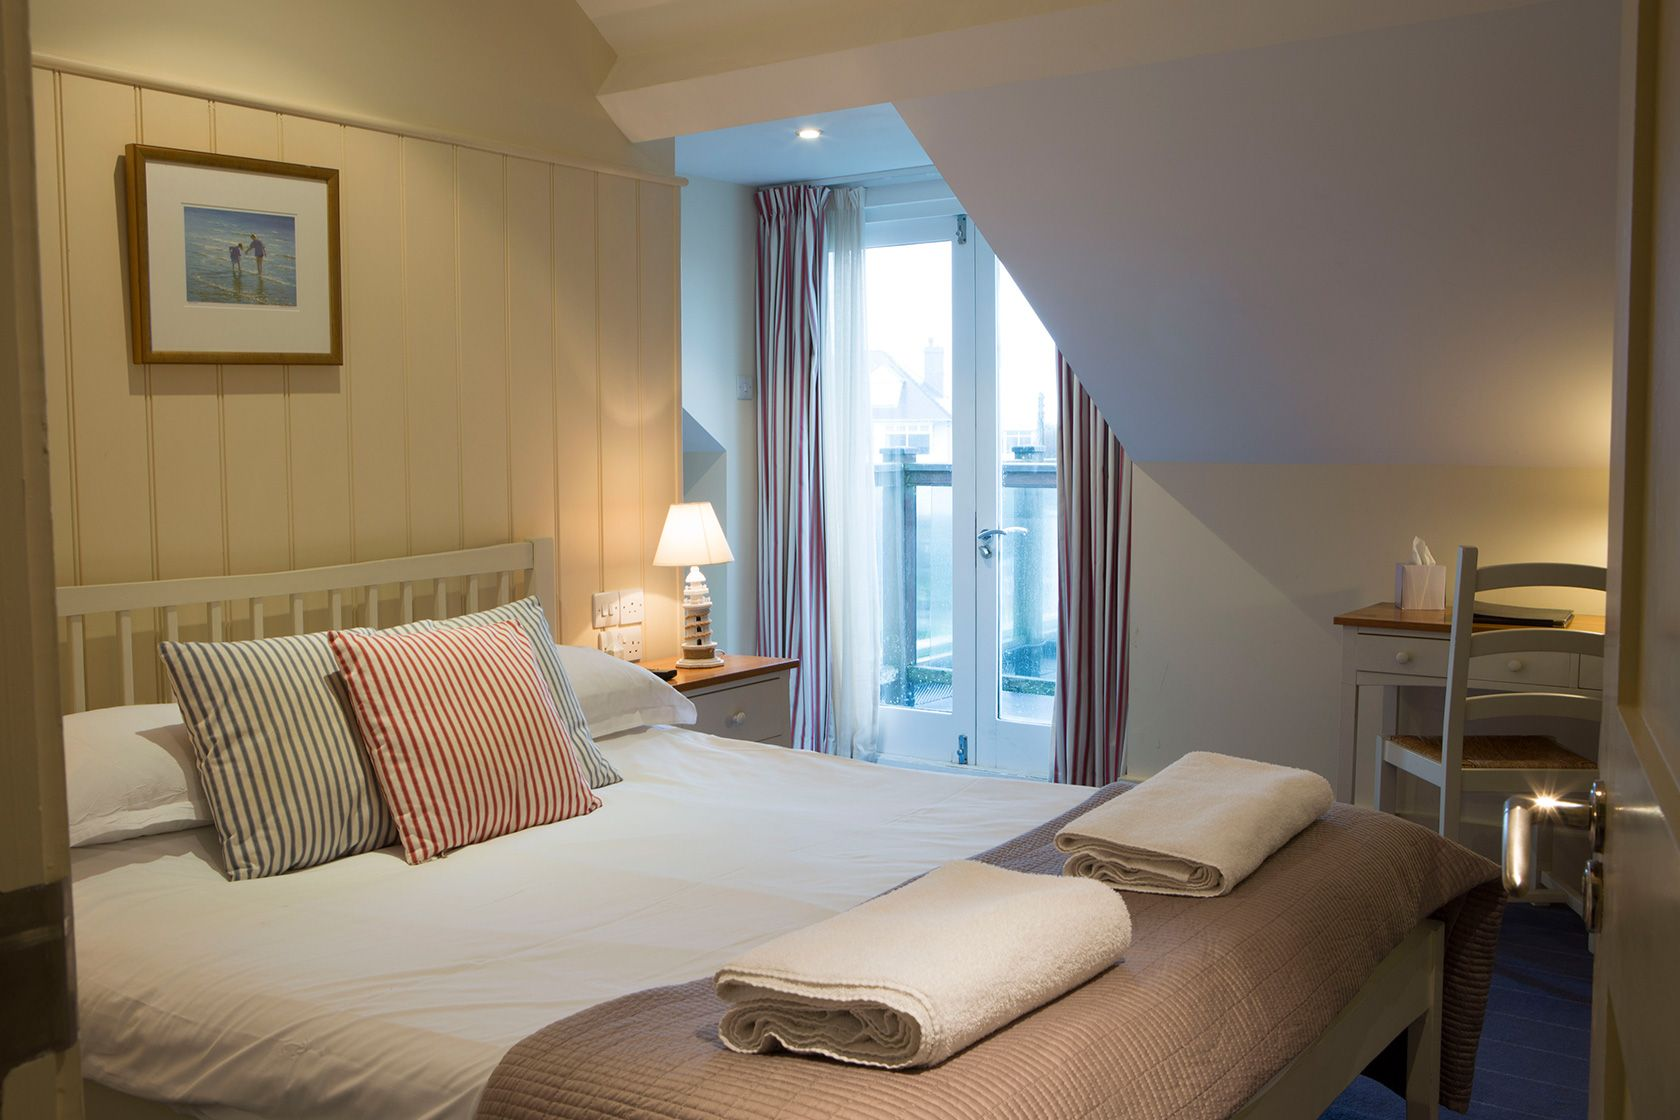 A picture of a premium double bedroom at The Seacroft pub and hotel in Trearddur Bay near Holyhead